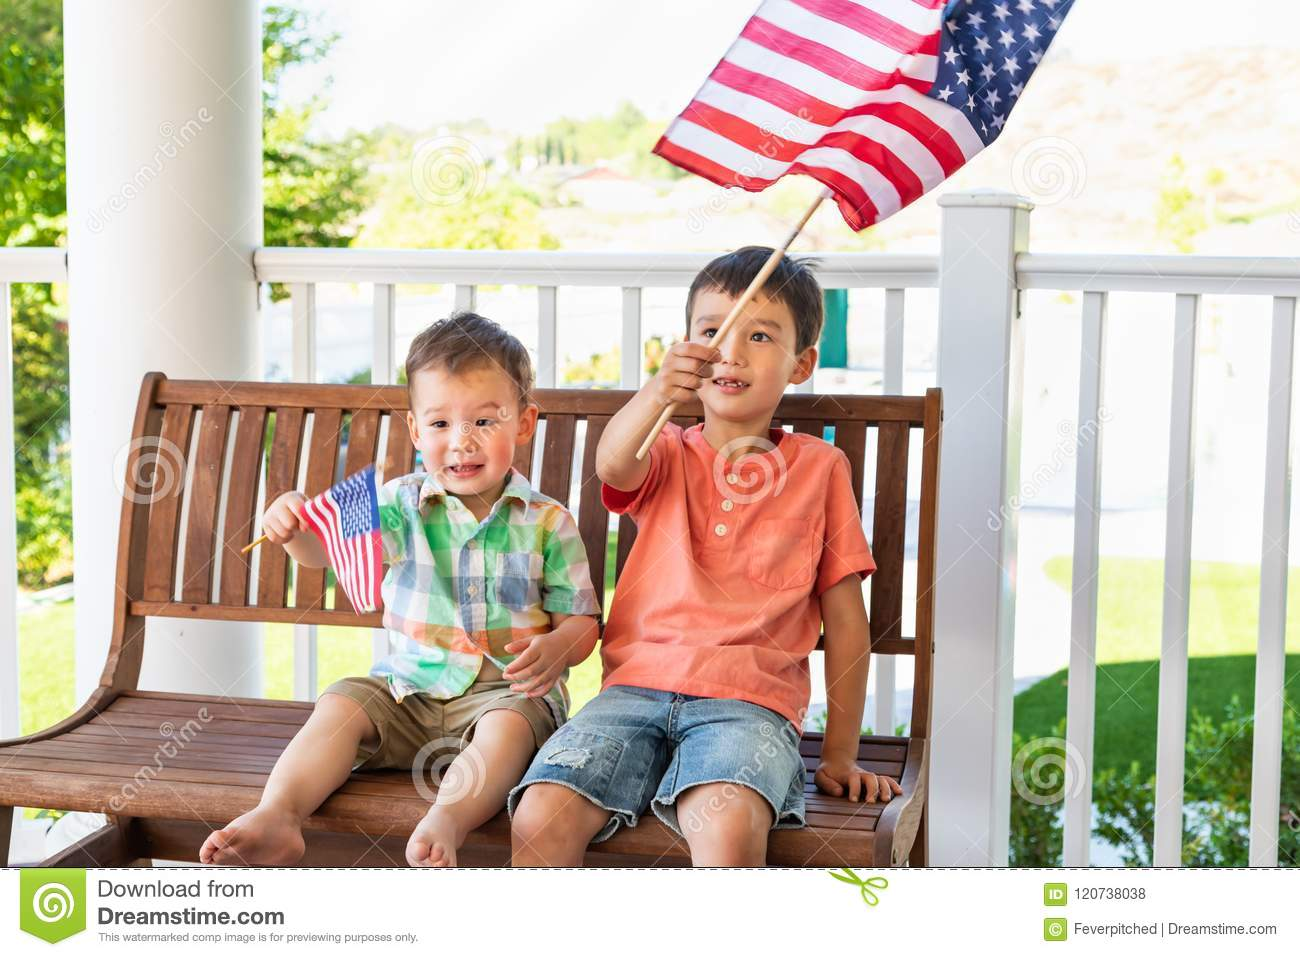 Smiling Young Mixed Race Chinese Caucasian Brothers Playing With American Flags